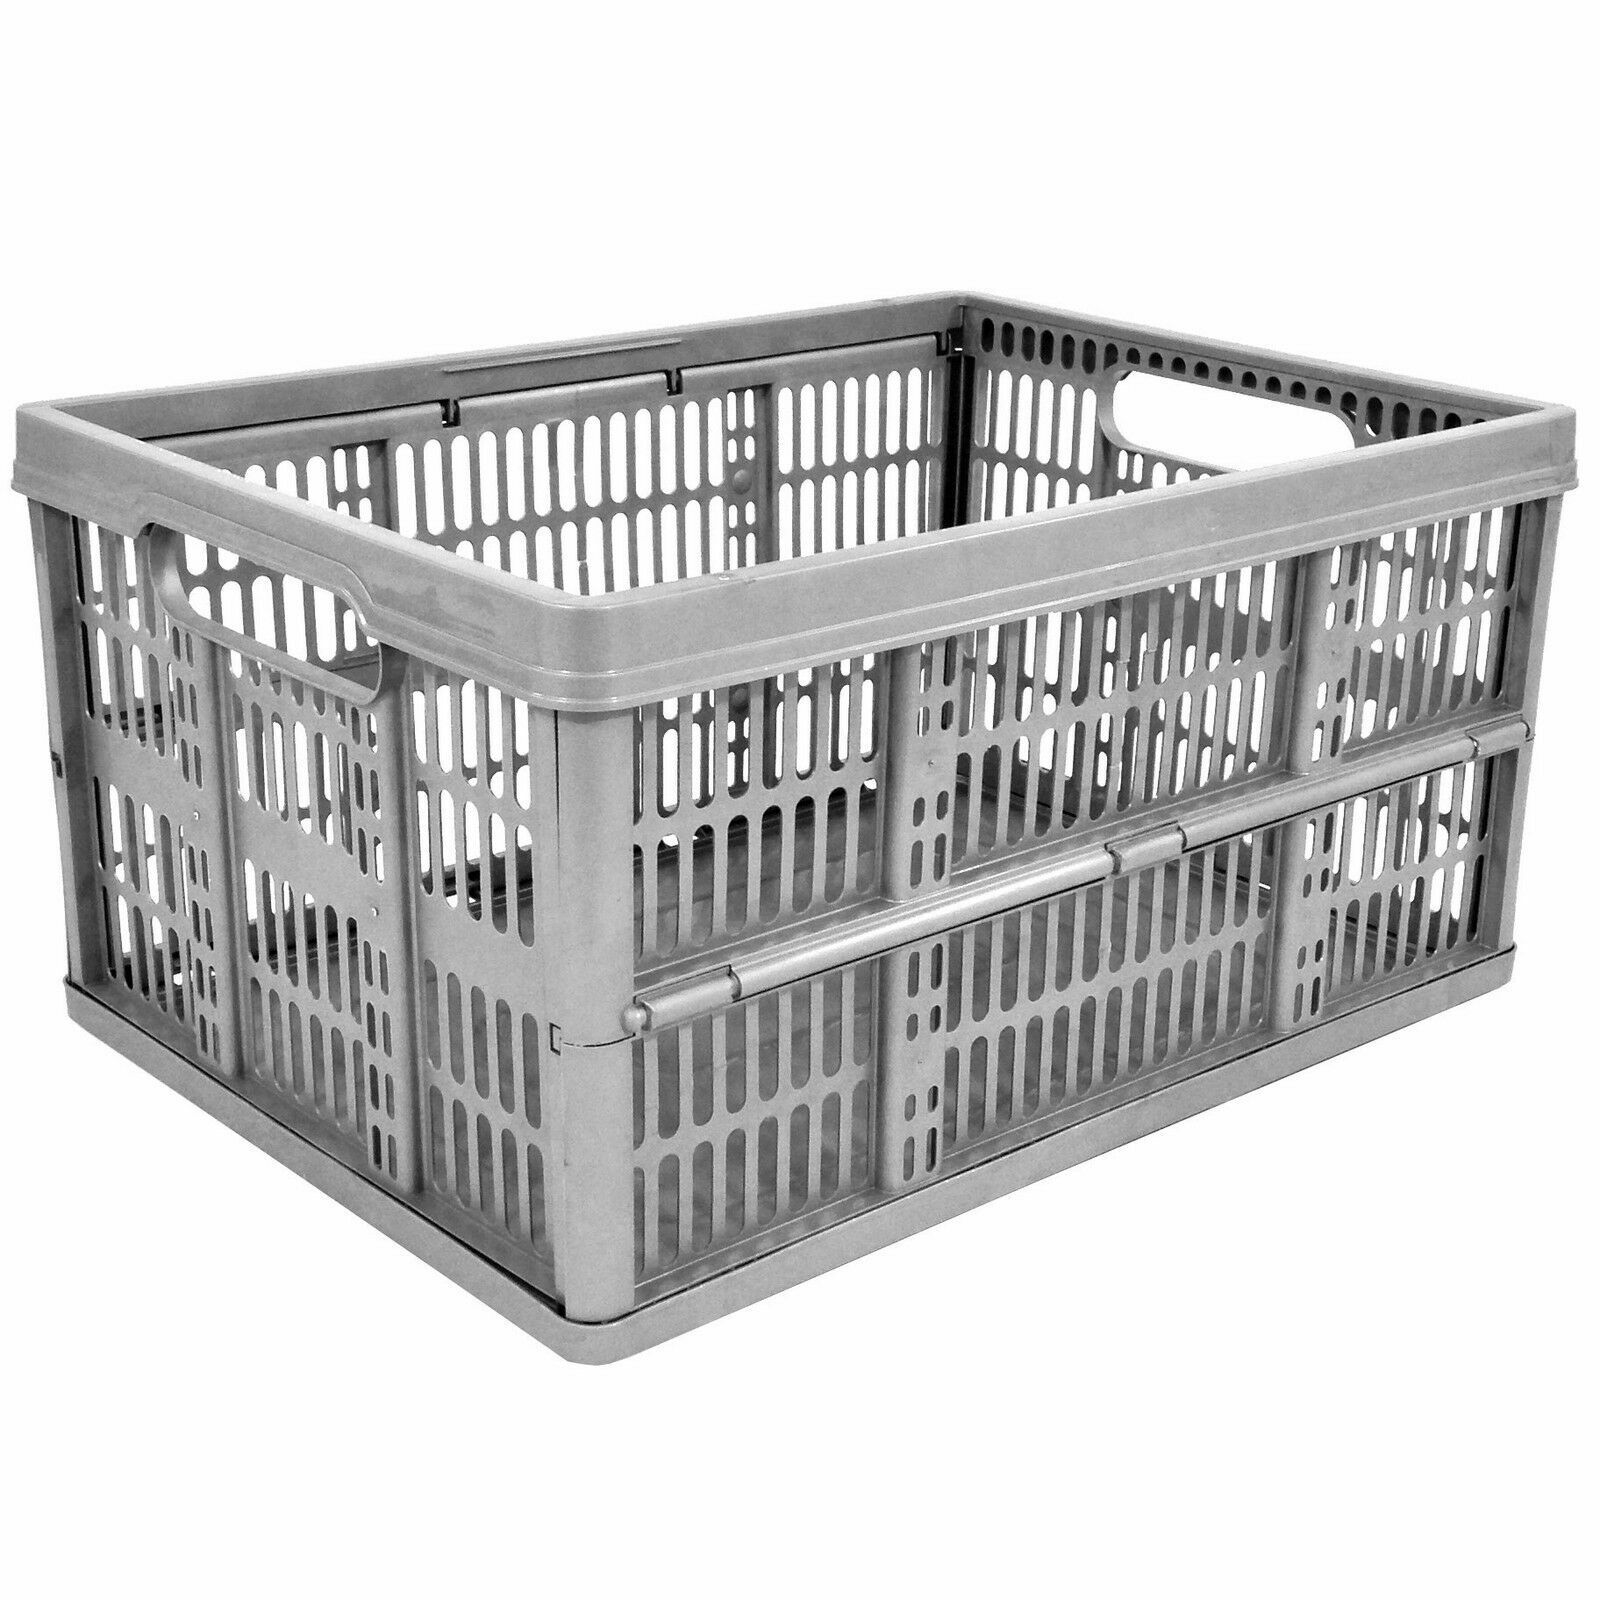 COLLAPSIBLE STORAGE CRATE PLASTIC BOX 32L STACKABLE BASKET STRONG FOLDING